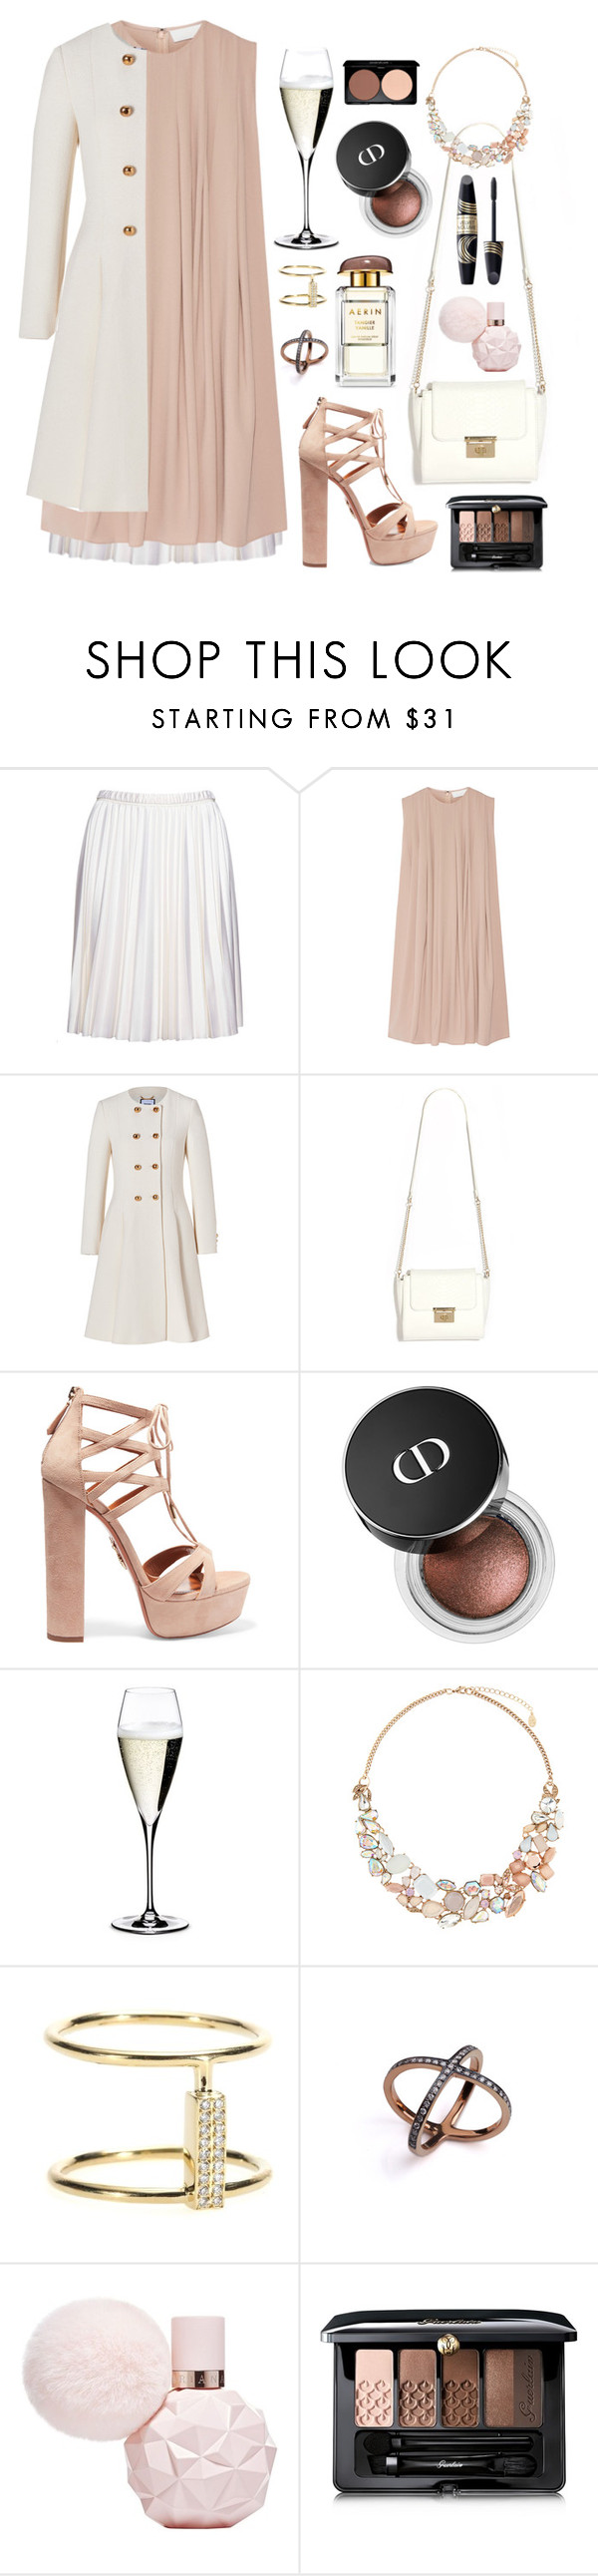 """""""Pleated Crepe Dress"""" by cherieaustin ❤ liked on Polyvore featuring Marc Jacobs, CO, Moschino, Aquazzura, Riedel, Accessorize, Ileana Makri, CFconcept, Max Factor and Guerlain"""